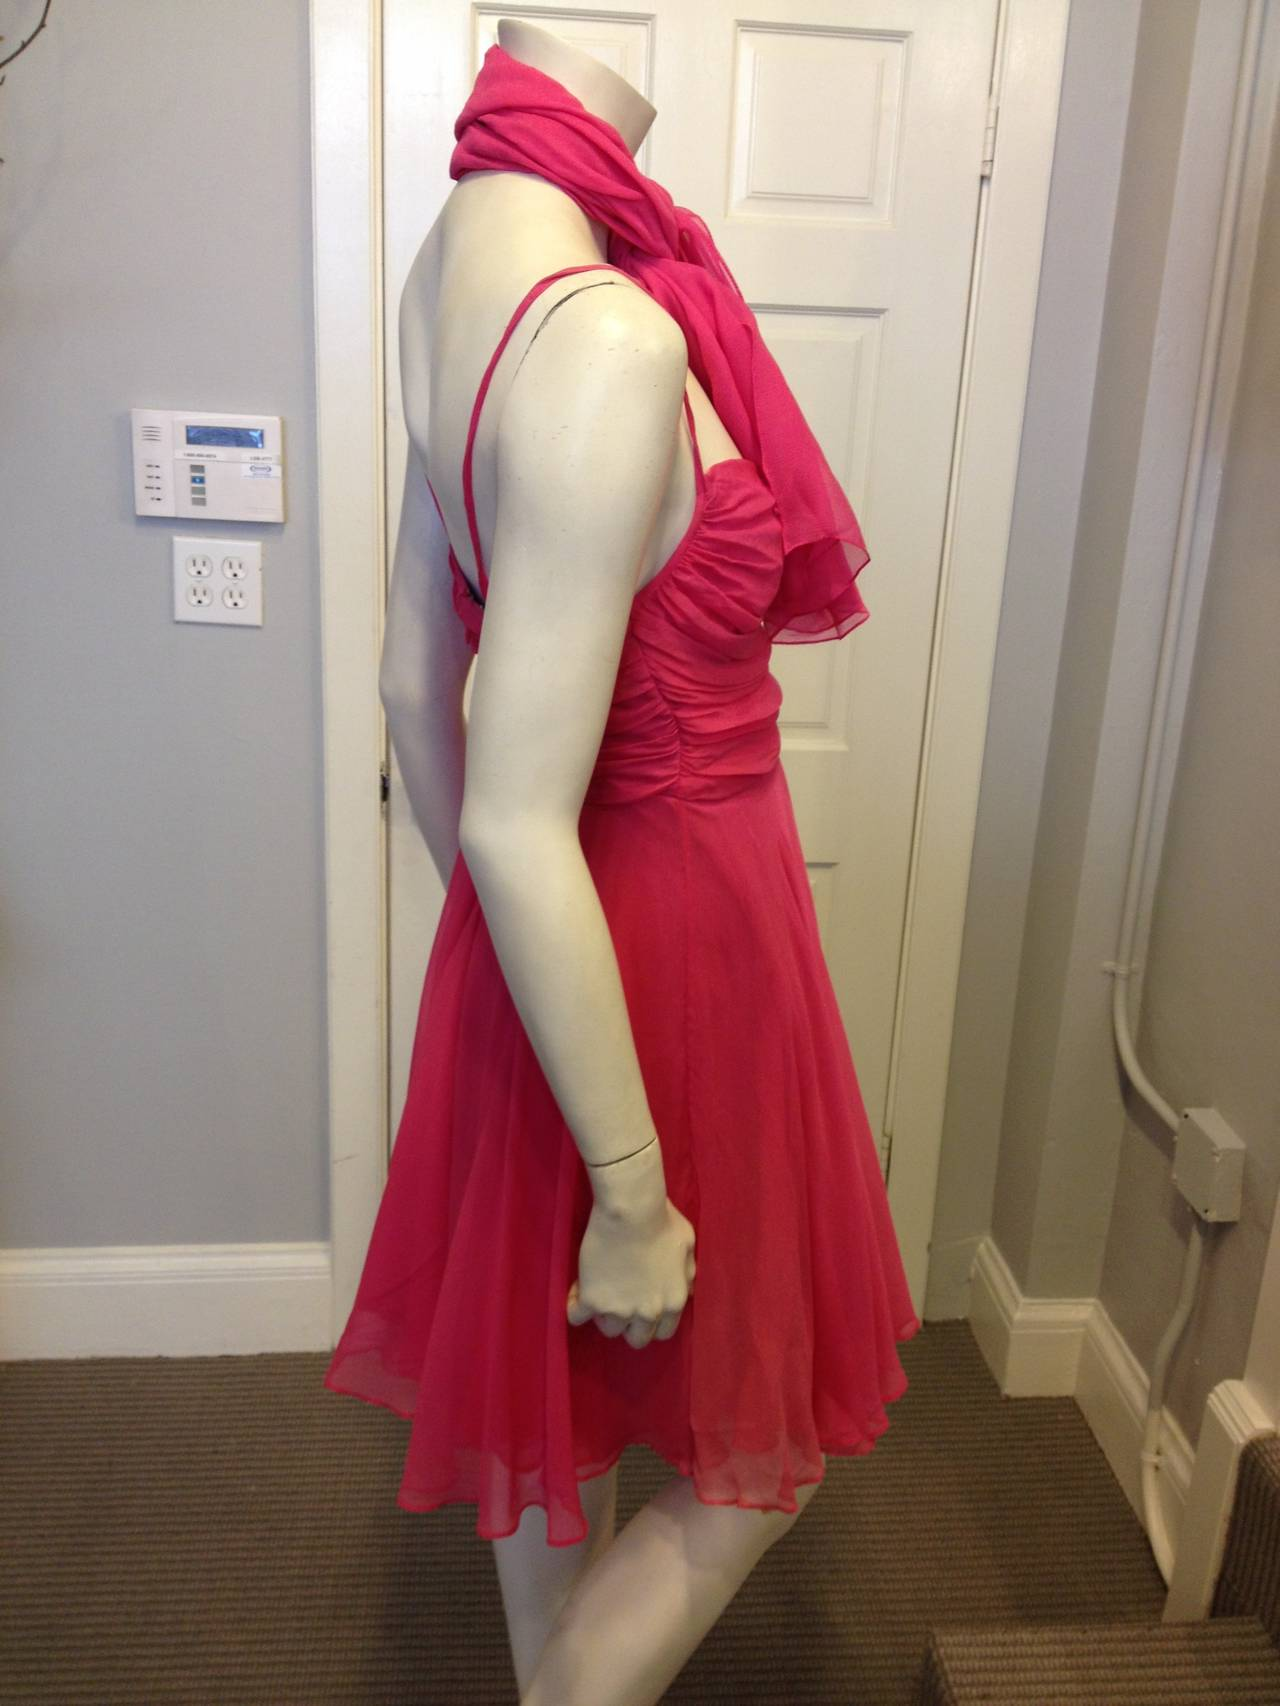 Sophie Sitbon Pink Chiffon Dress In Excellent Condition For Sale In San Francisco, CA